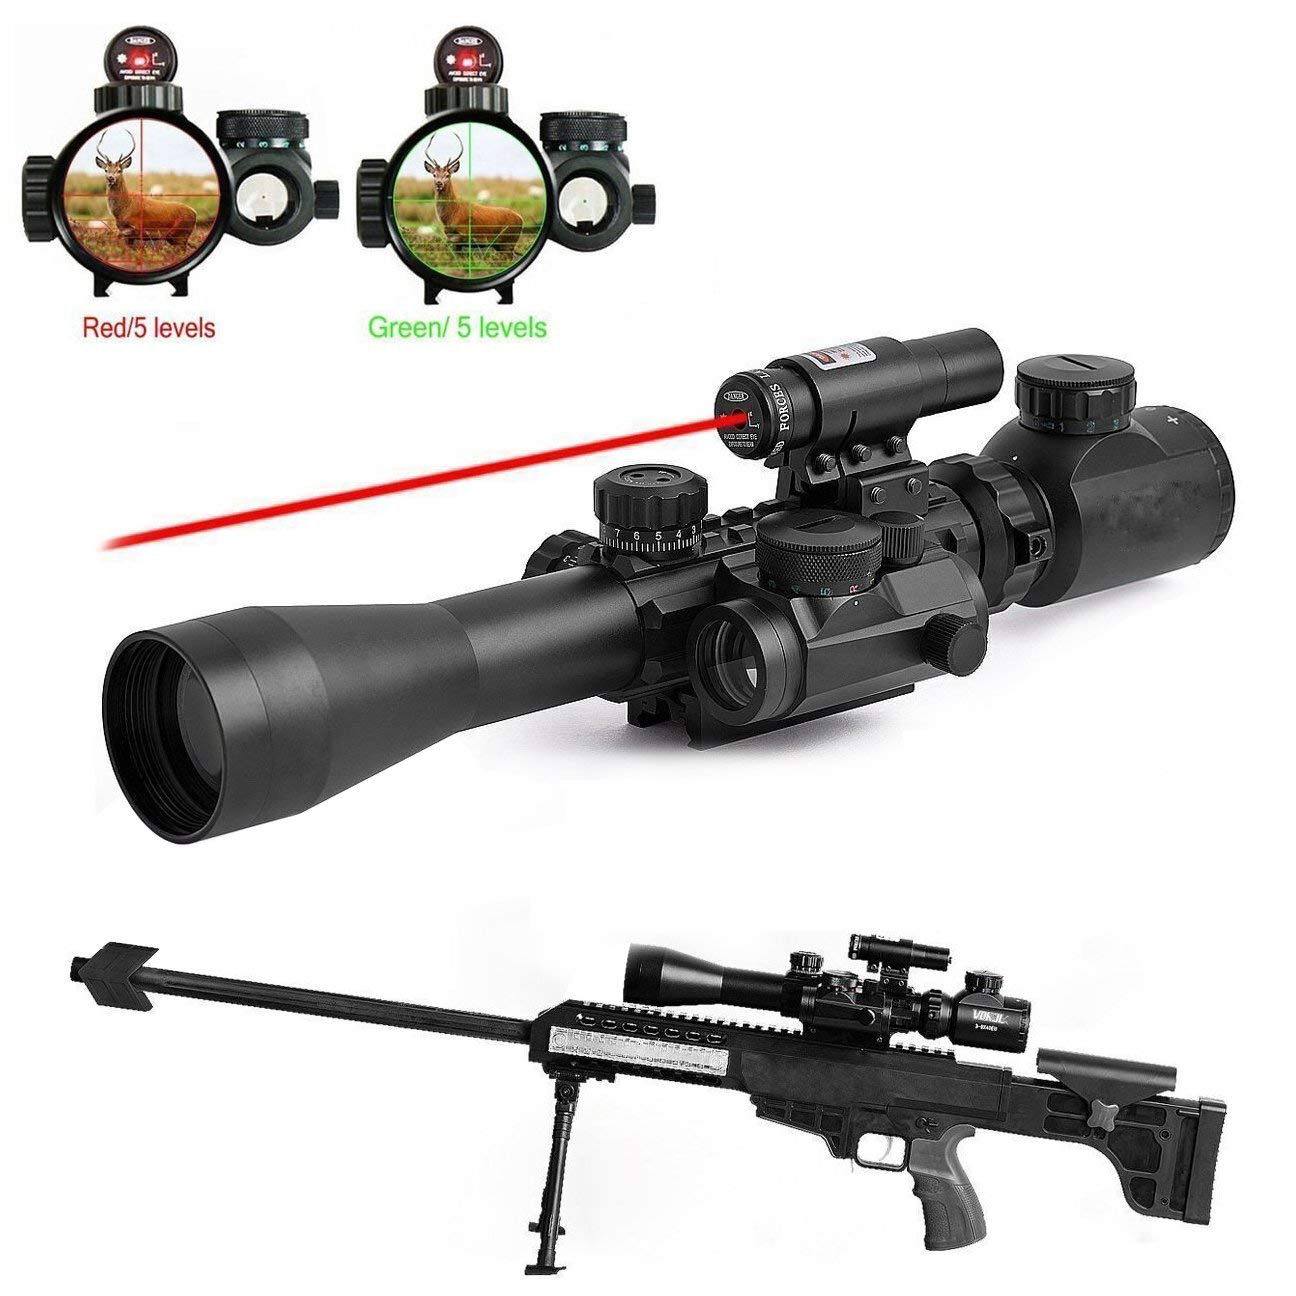 Cvlife 3-9X40 Illuminated Tactical Rifle Scope with Red Laser & Holographic Dot Sight